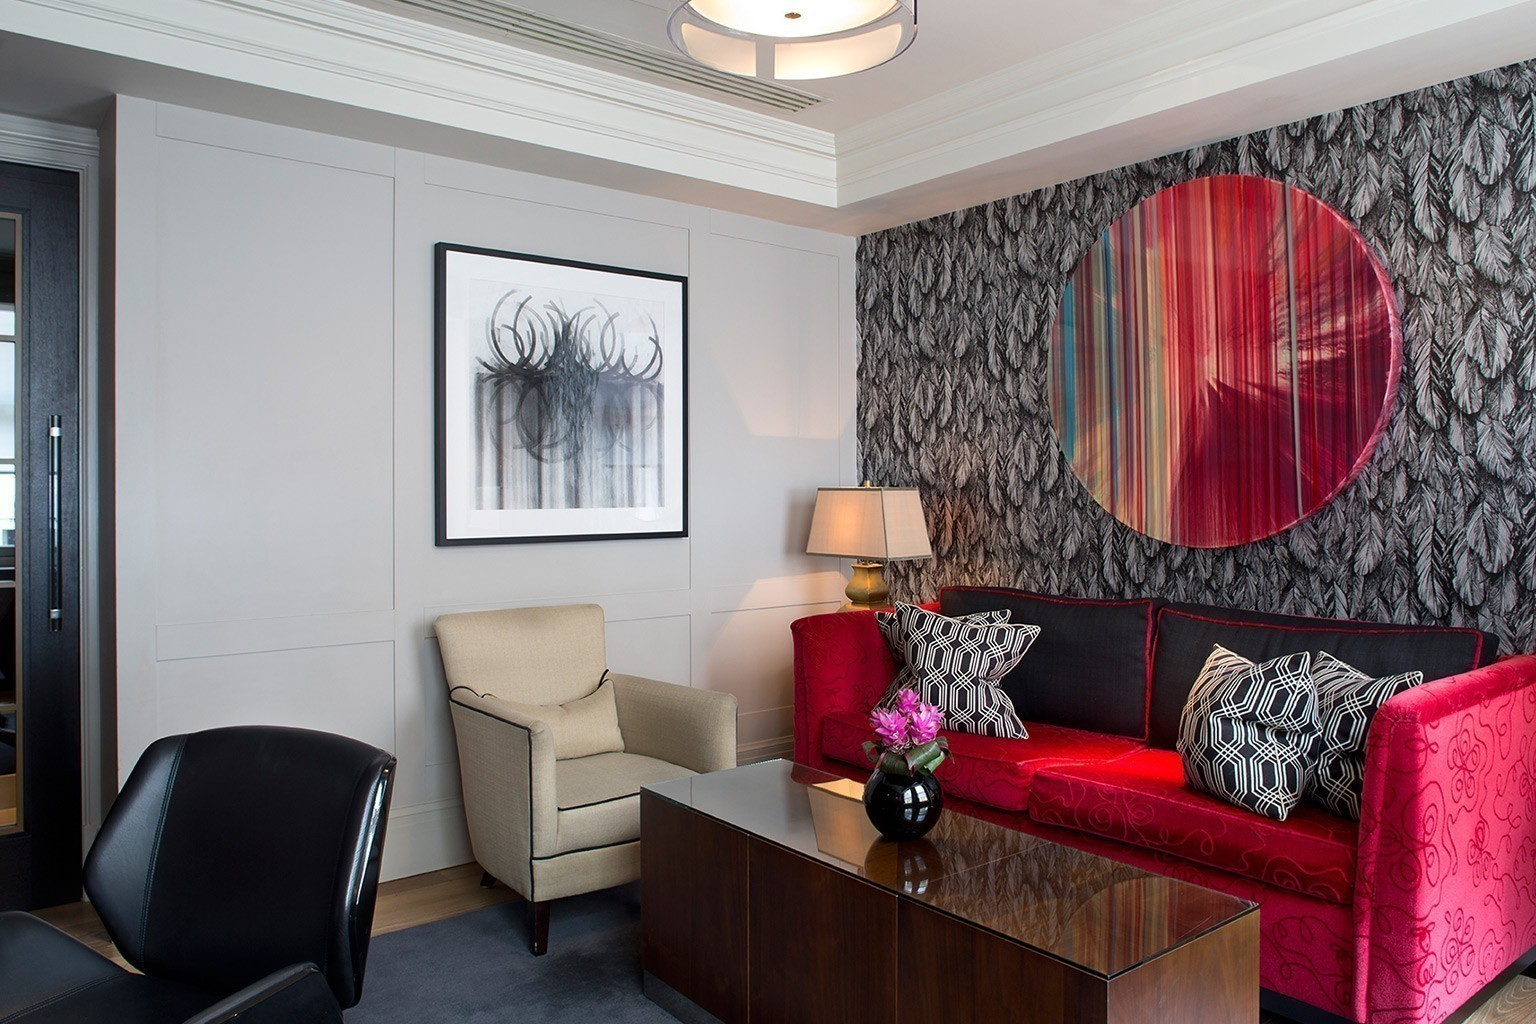 The Arch London | Luxushotels bei DESIGNREISEN